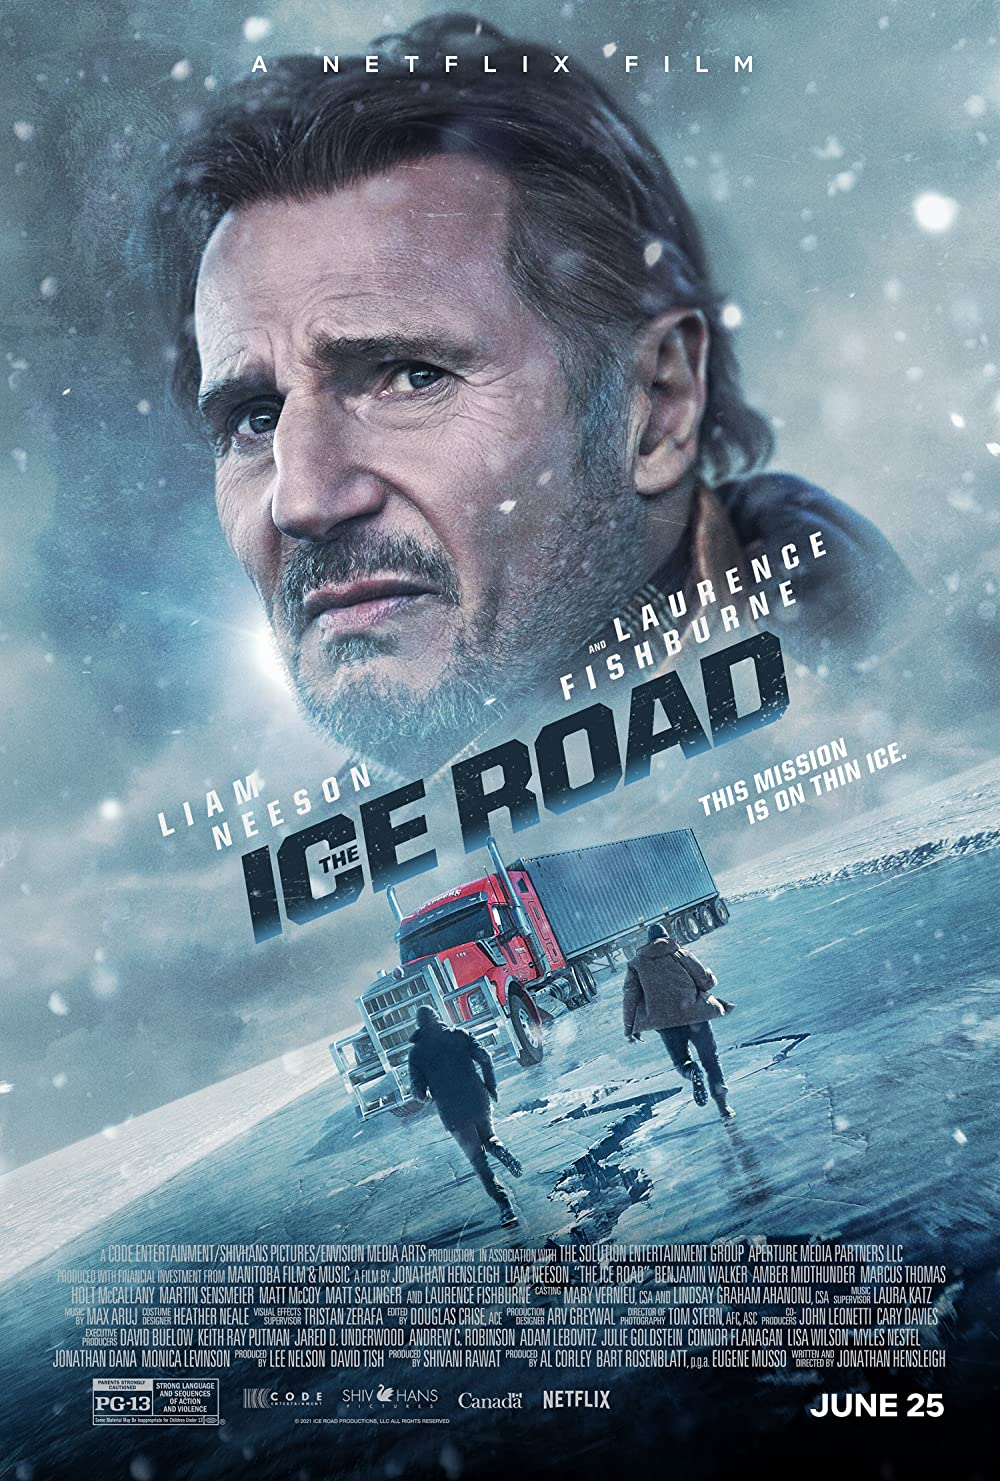 Download The Ice Road 2021 HQ Hindi Dubbed 1080p HDRip 1.6GB